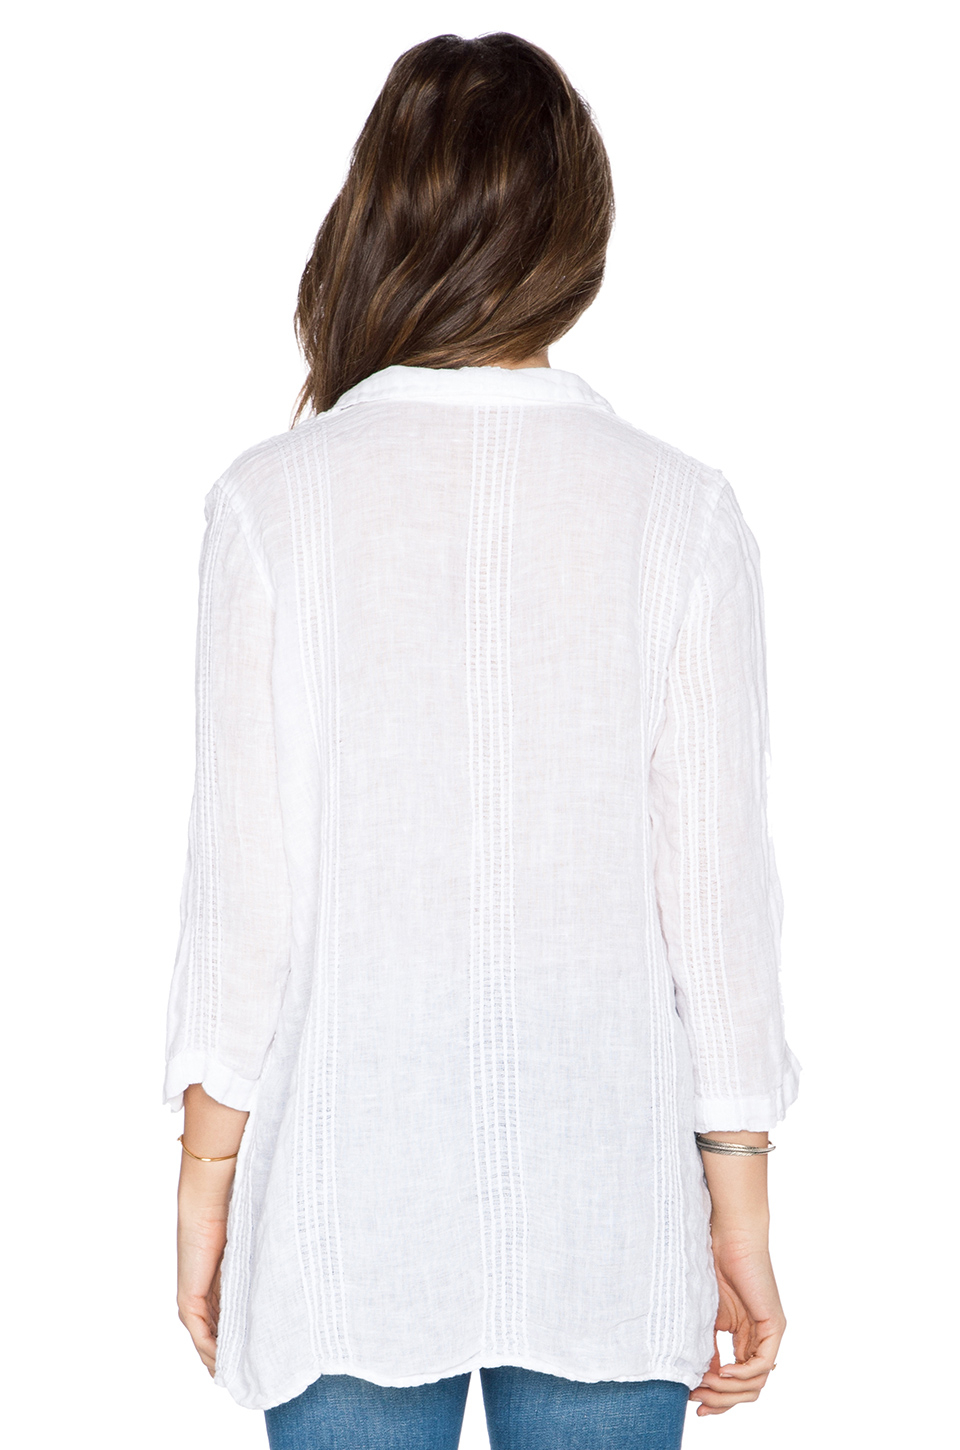 Cp Shades Kendall Linen Dress In White Lyst